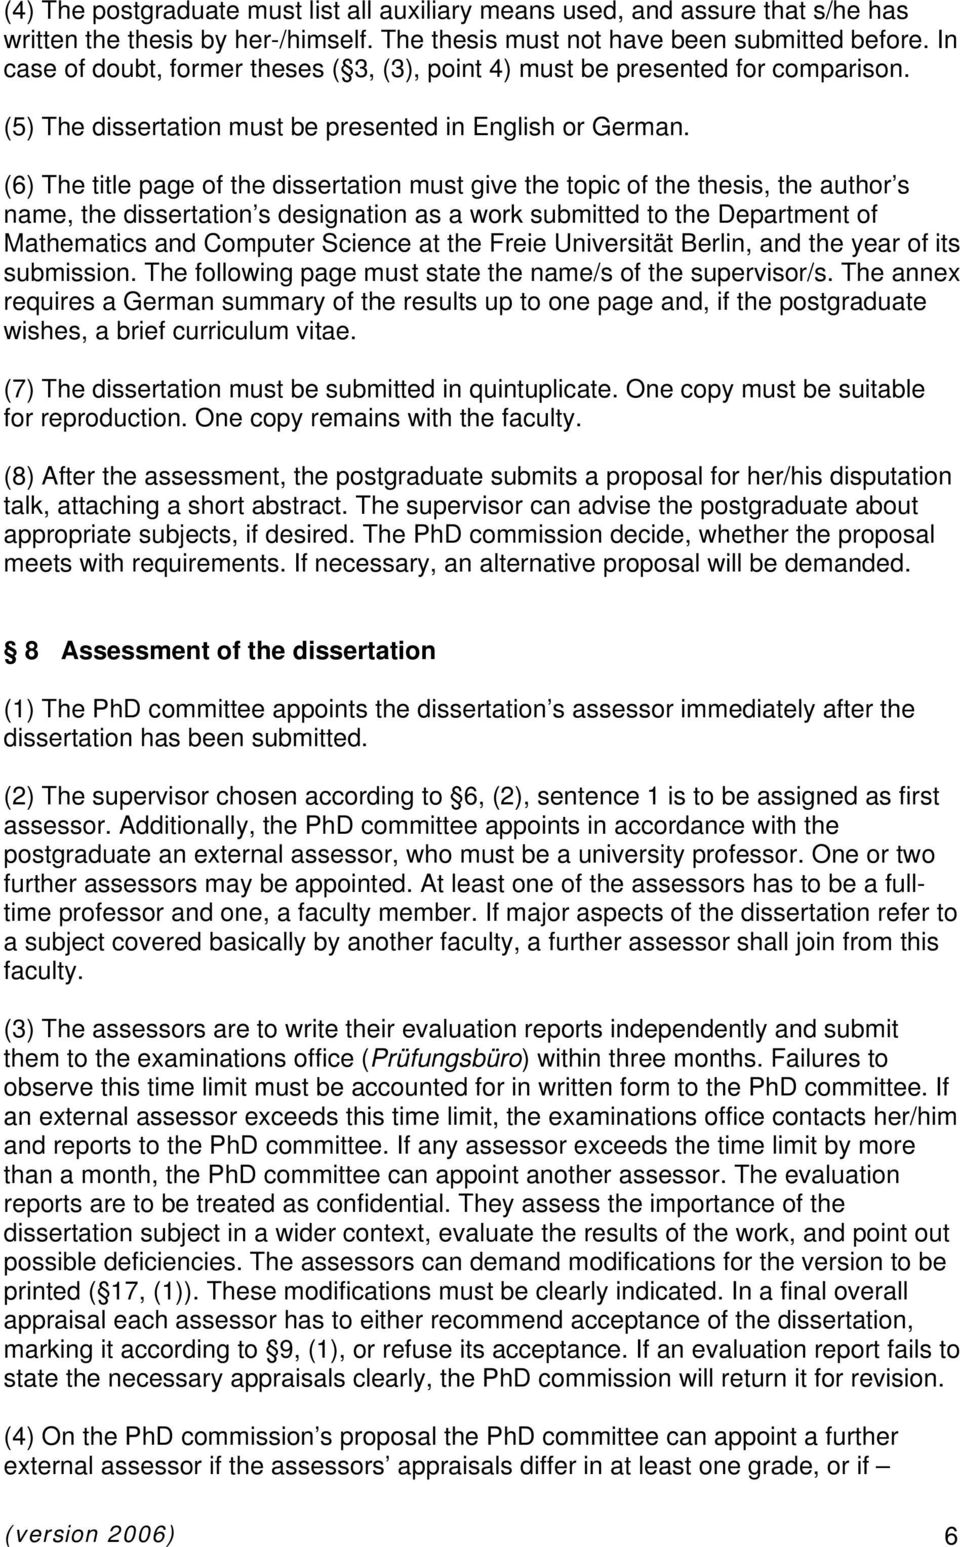 (6) The title page of the dissertation must give the topic of the thesis, the author s name, the dissertation s designation as a work submitted to the Department of Mathematics and Computer Science